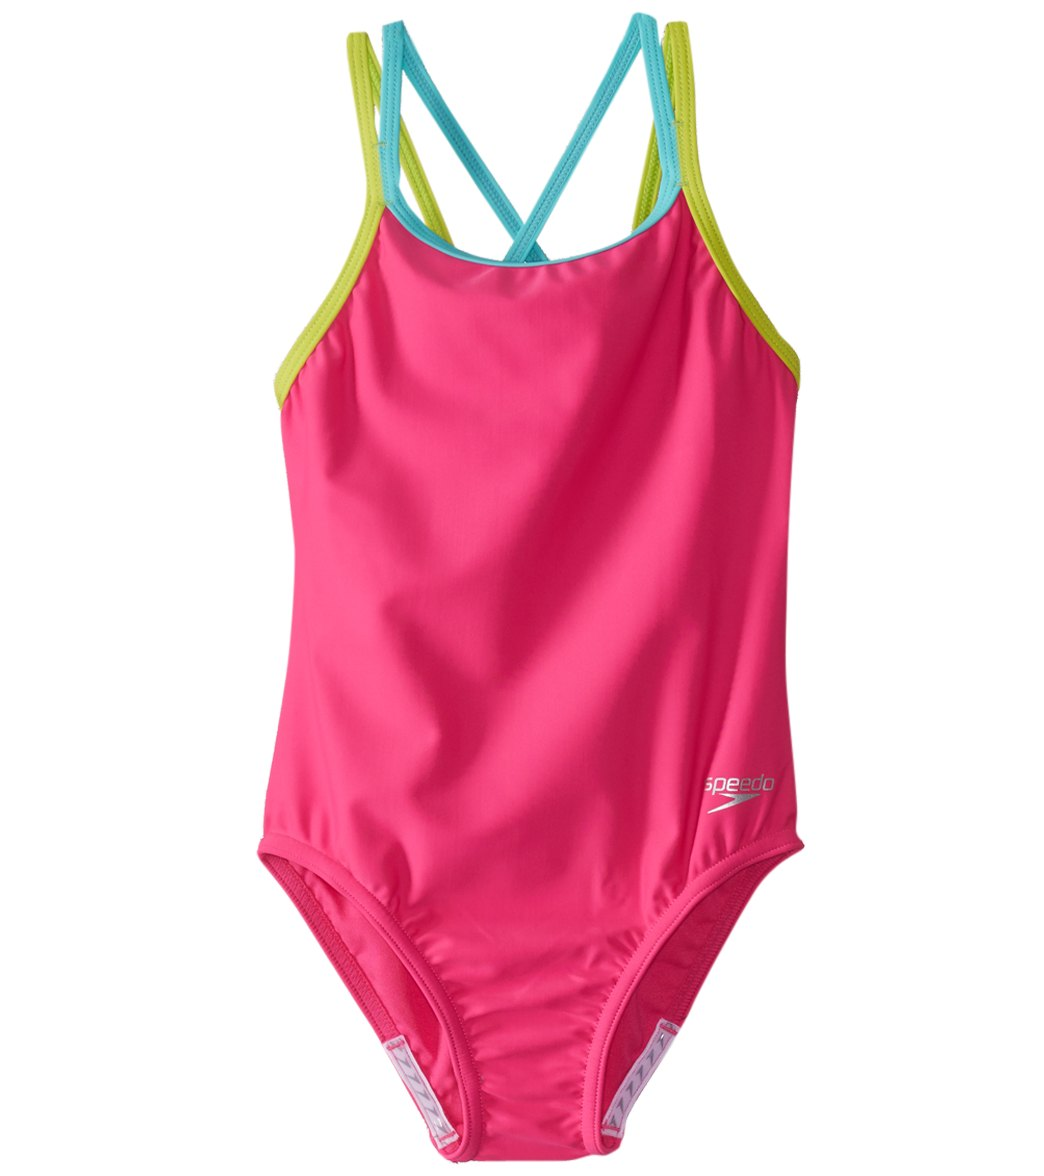 14484d2182a8a Speedo Girls' Crossback One Piece Swimsuit (7-16) at SwimOutlet.com